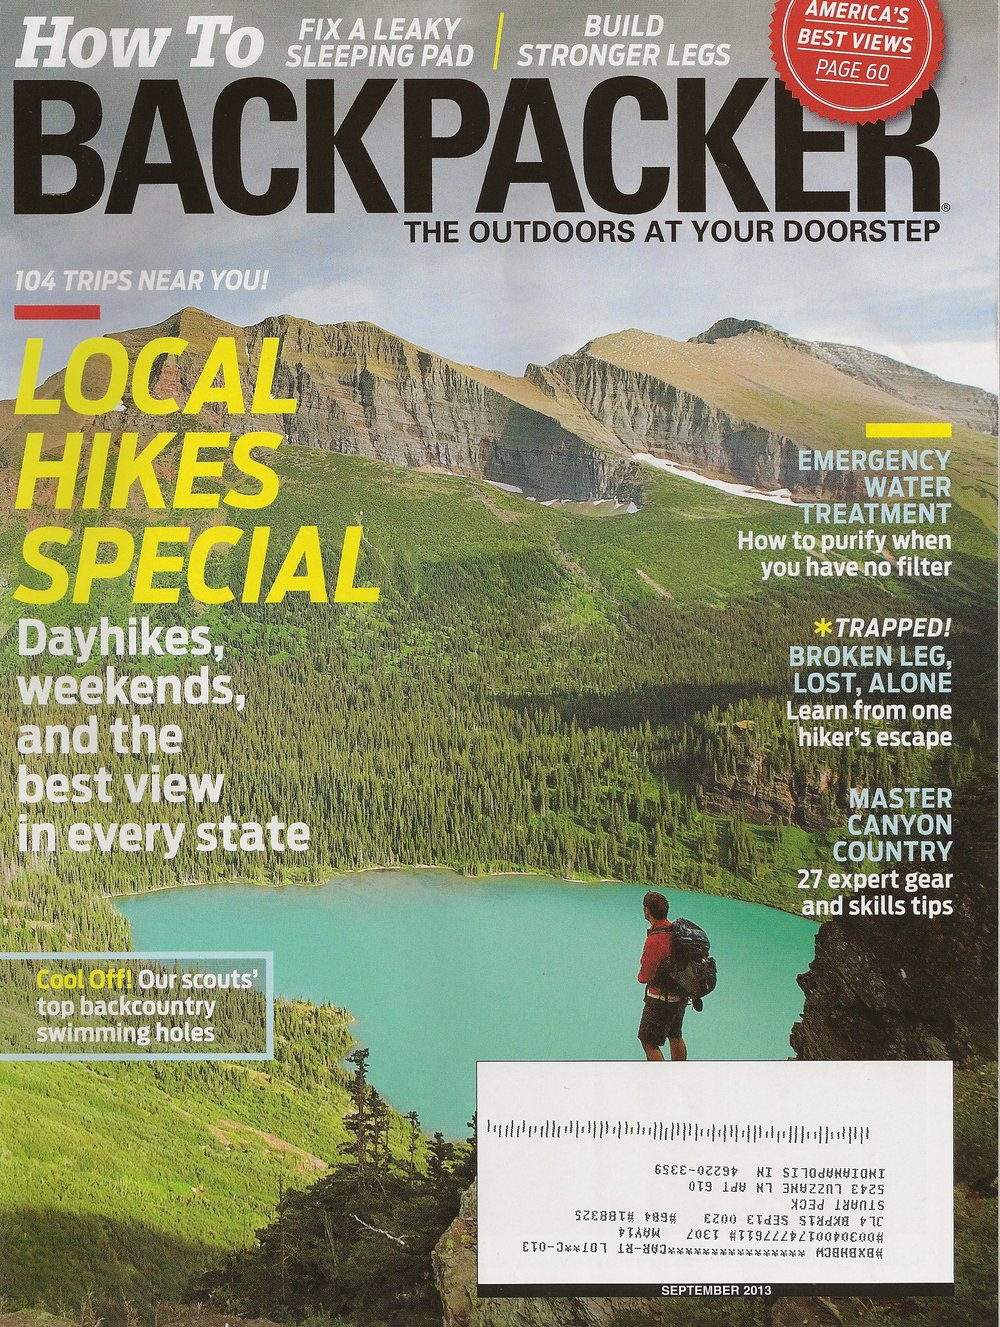 River to River Trail BACKPACKER magazine - September 2013